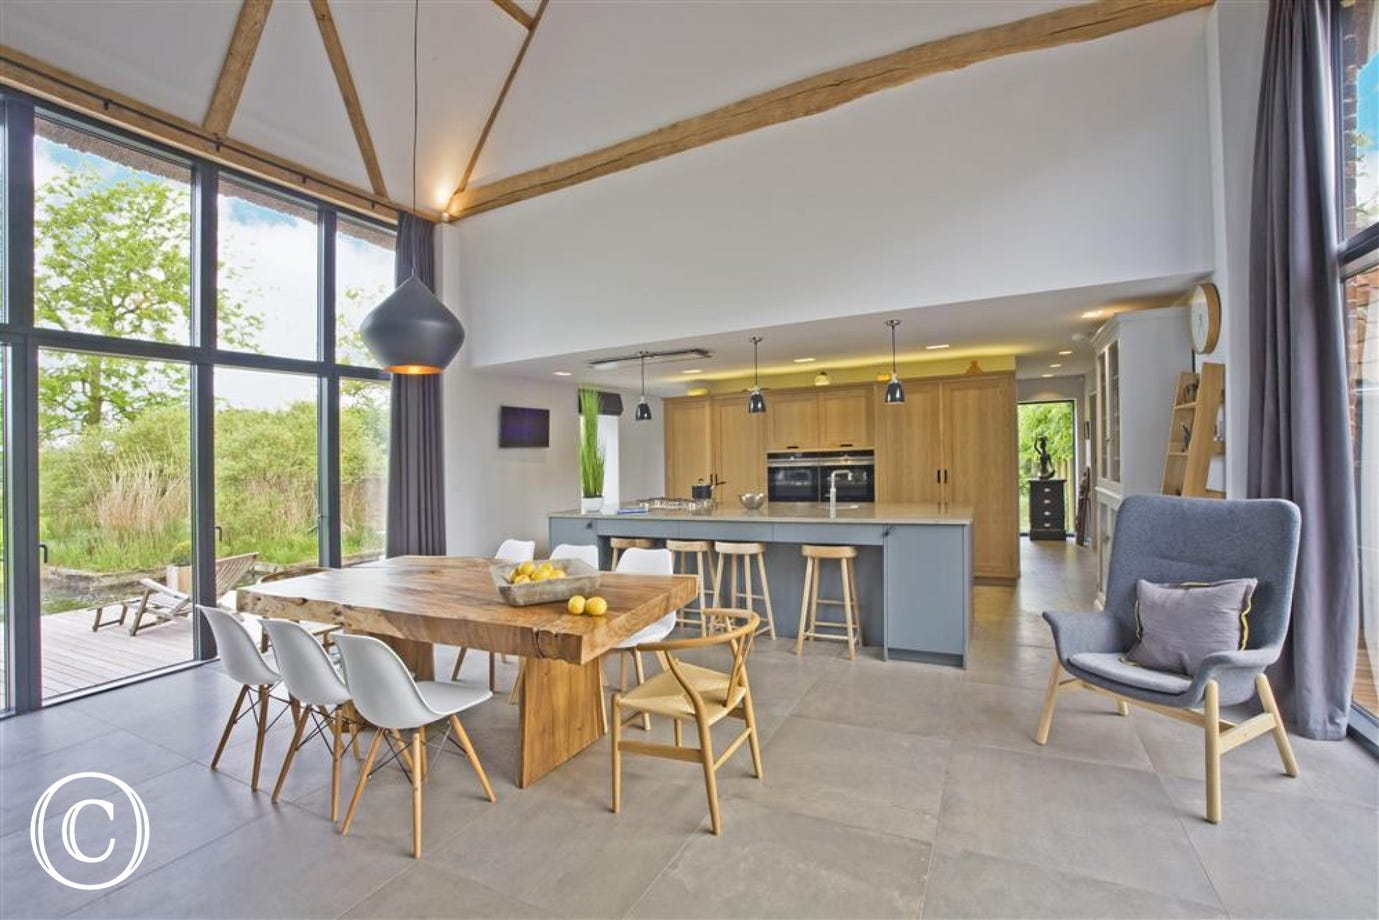 Alexandra Barn is a stunning newly renovated barn conversion close to the Coast